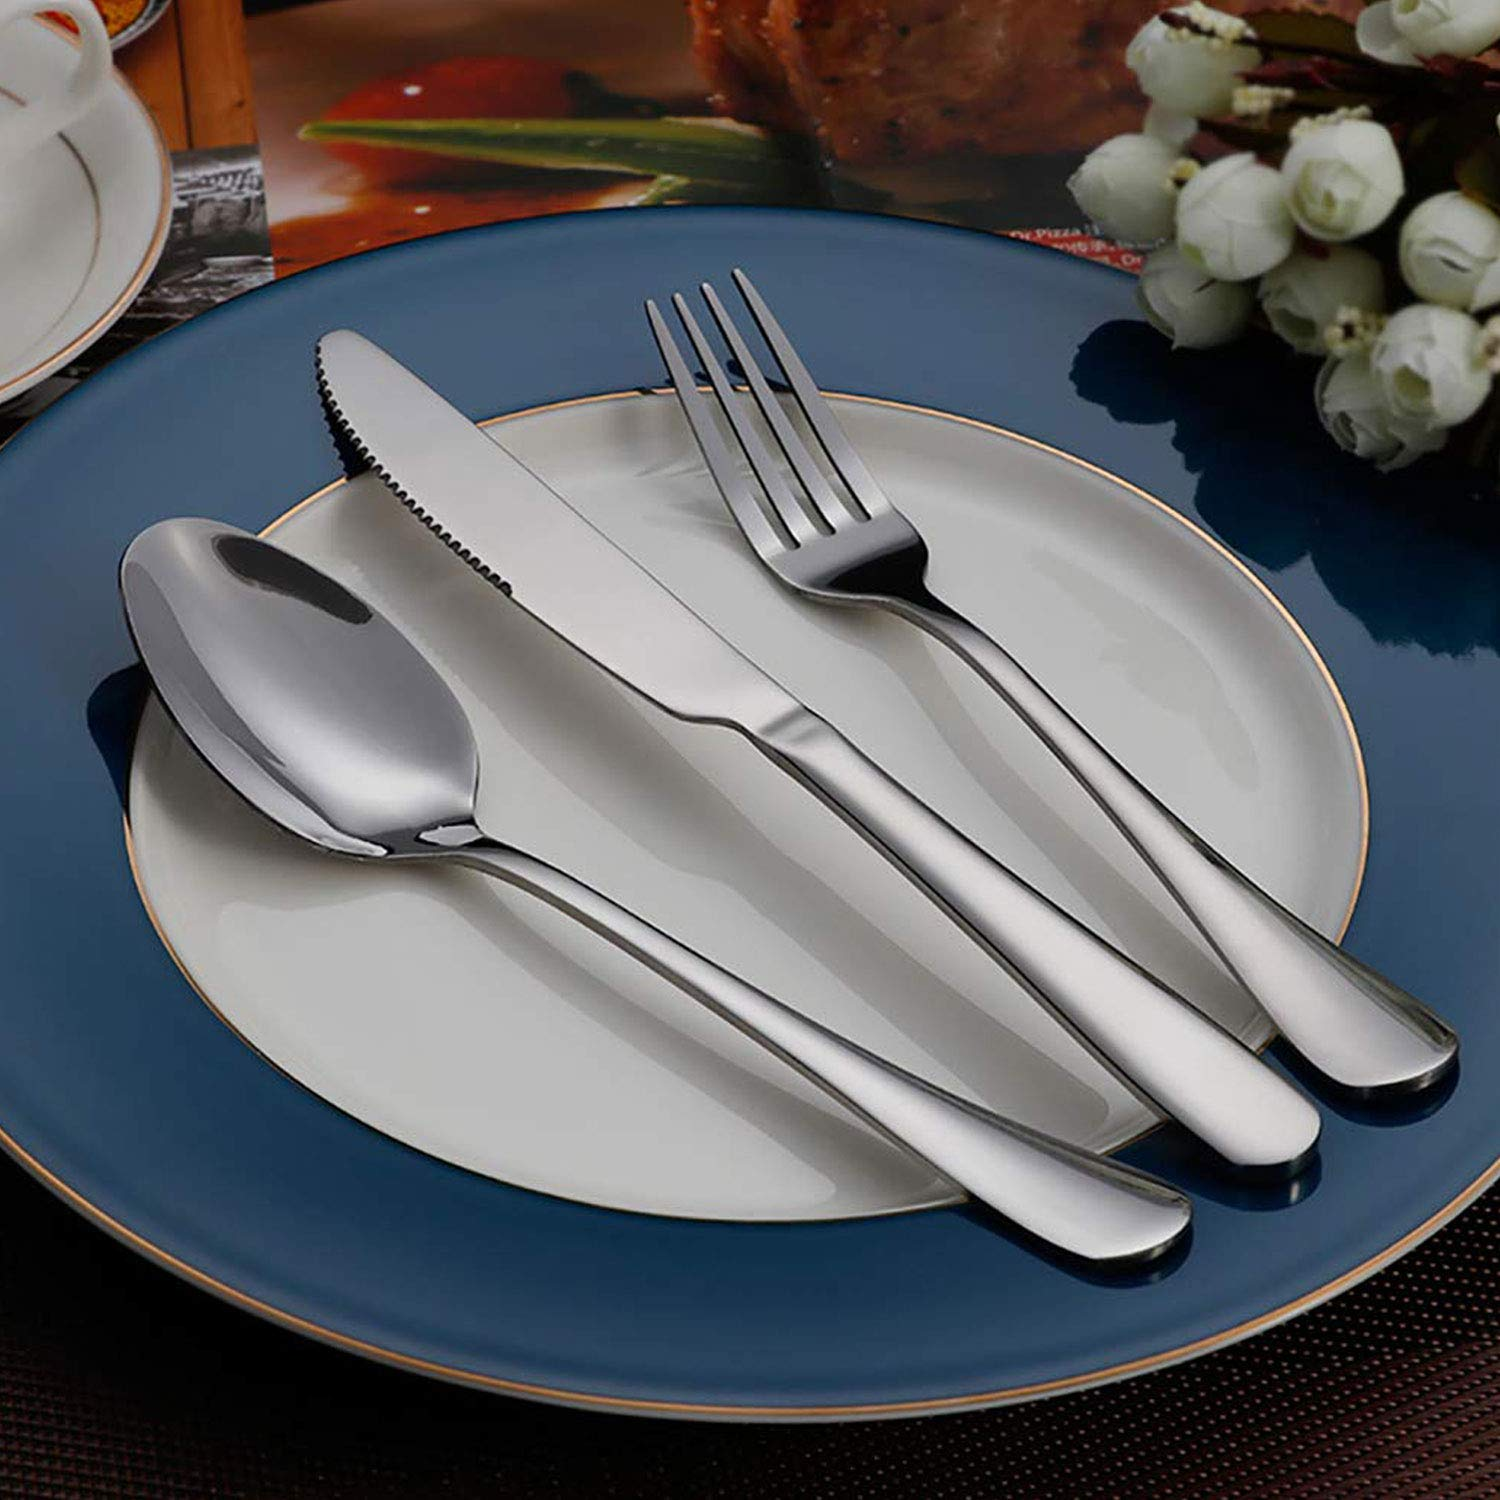 TaNaT Flatware Set Stainless Steel Silverware Cutlery Set Hostess Serving Set Include Knife/Fork/Spoon Polished,Solid, Durable for Parties, Weddings, Dinners, Events,24 Piece